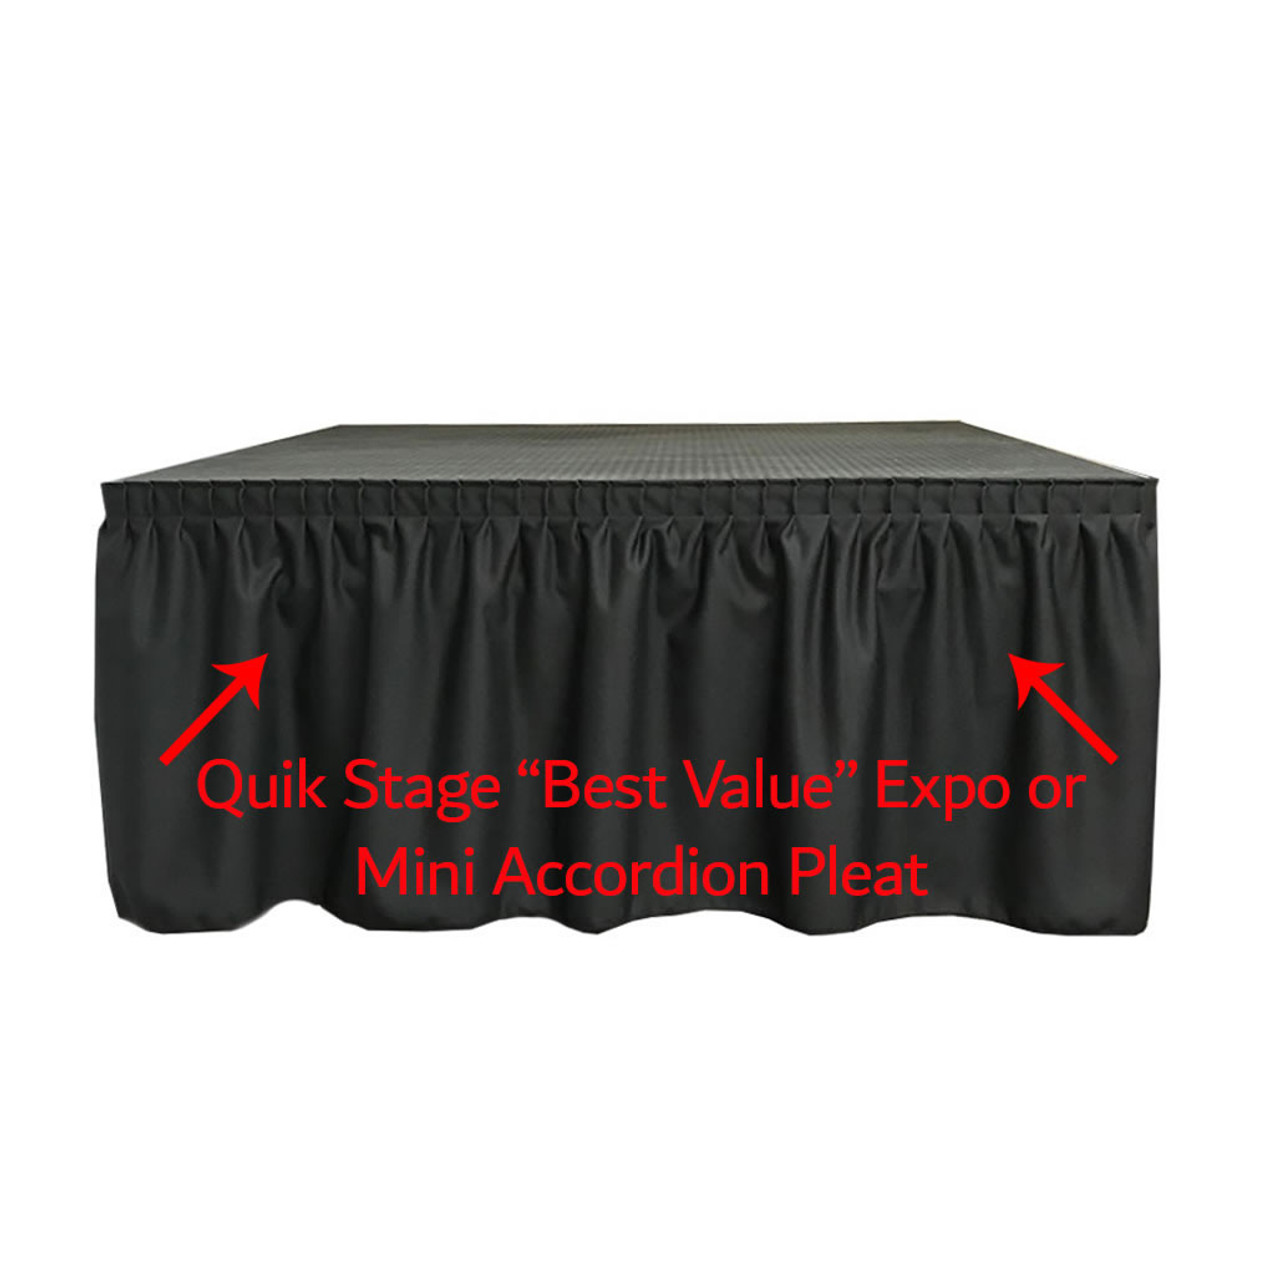 24 Inches High Best Value Black Expo Pleat Polyester Stage Skirting with Velcro. FR Rated. - Expo/Mini-Accordion Pleat skirting on stage.